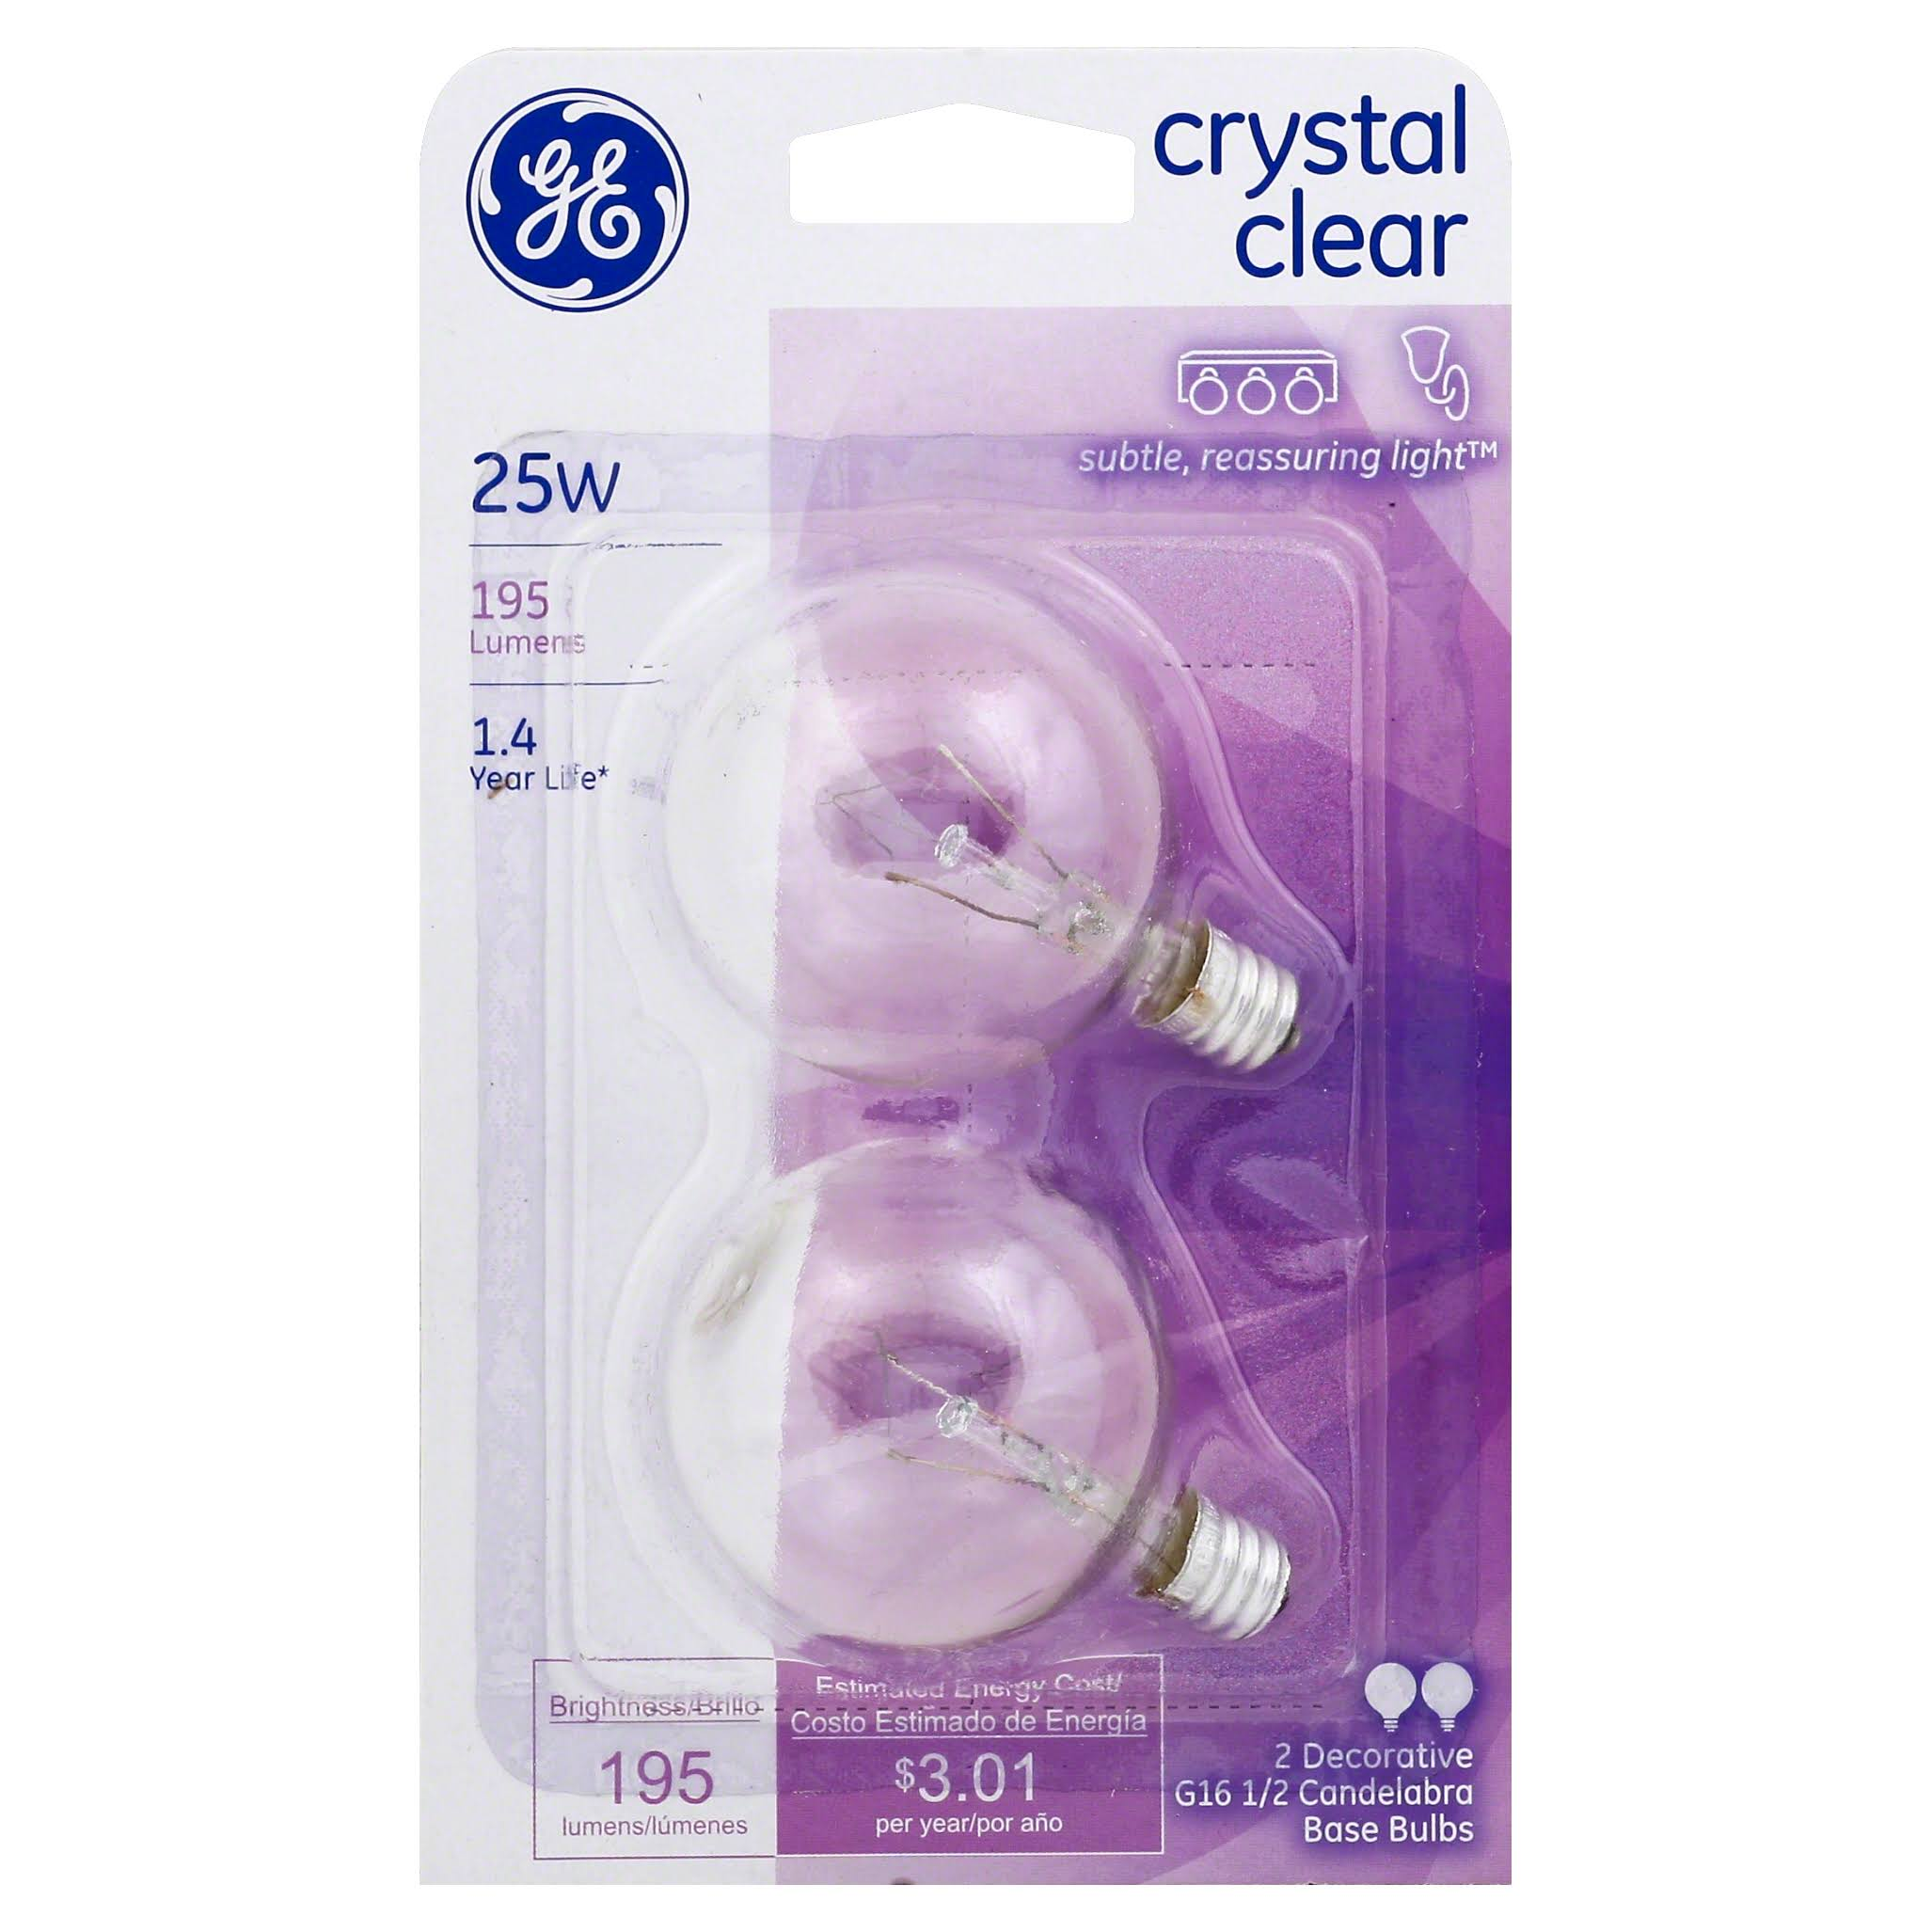 GE Lighting Light Bulb - 25W, Crystal Clear, 2 Bulbs